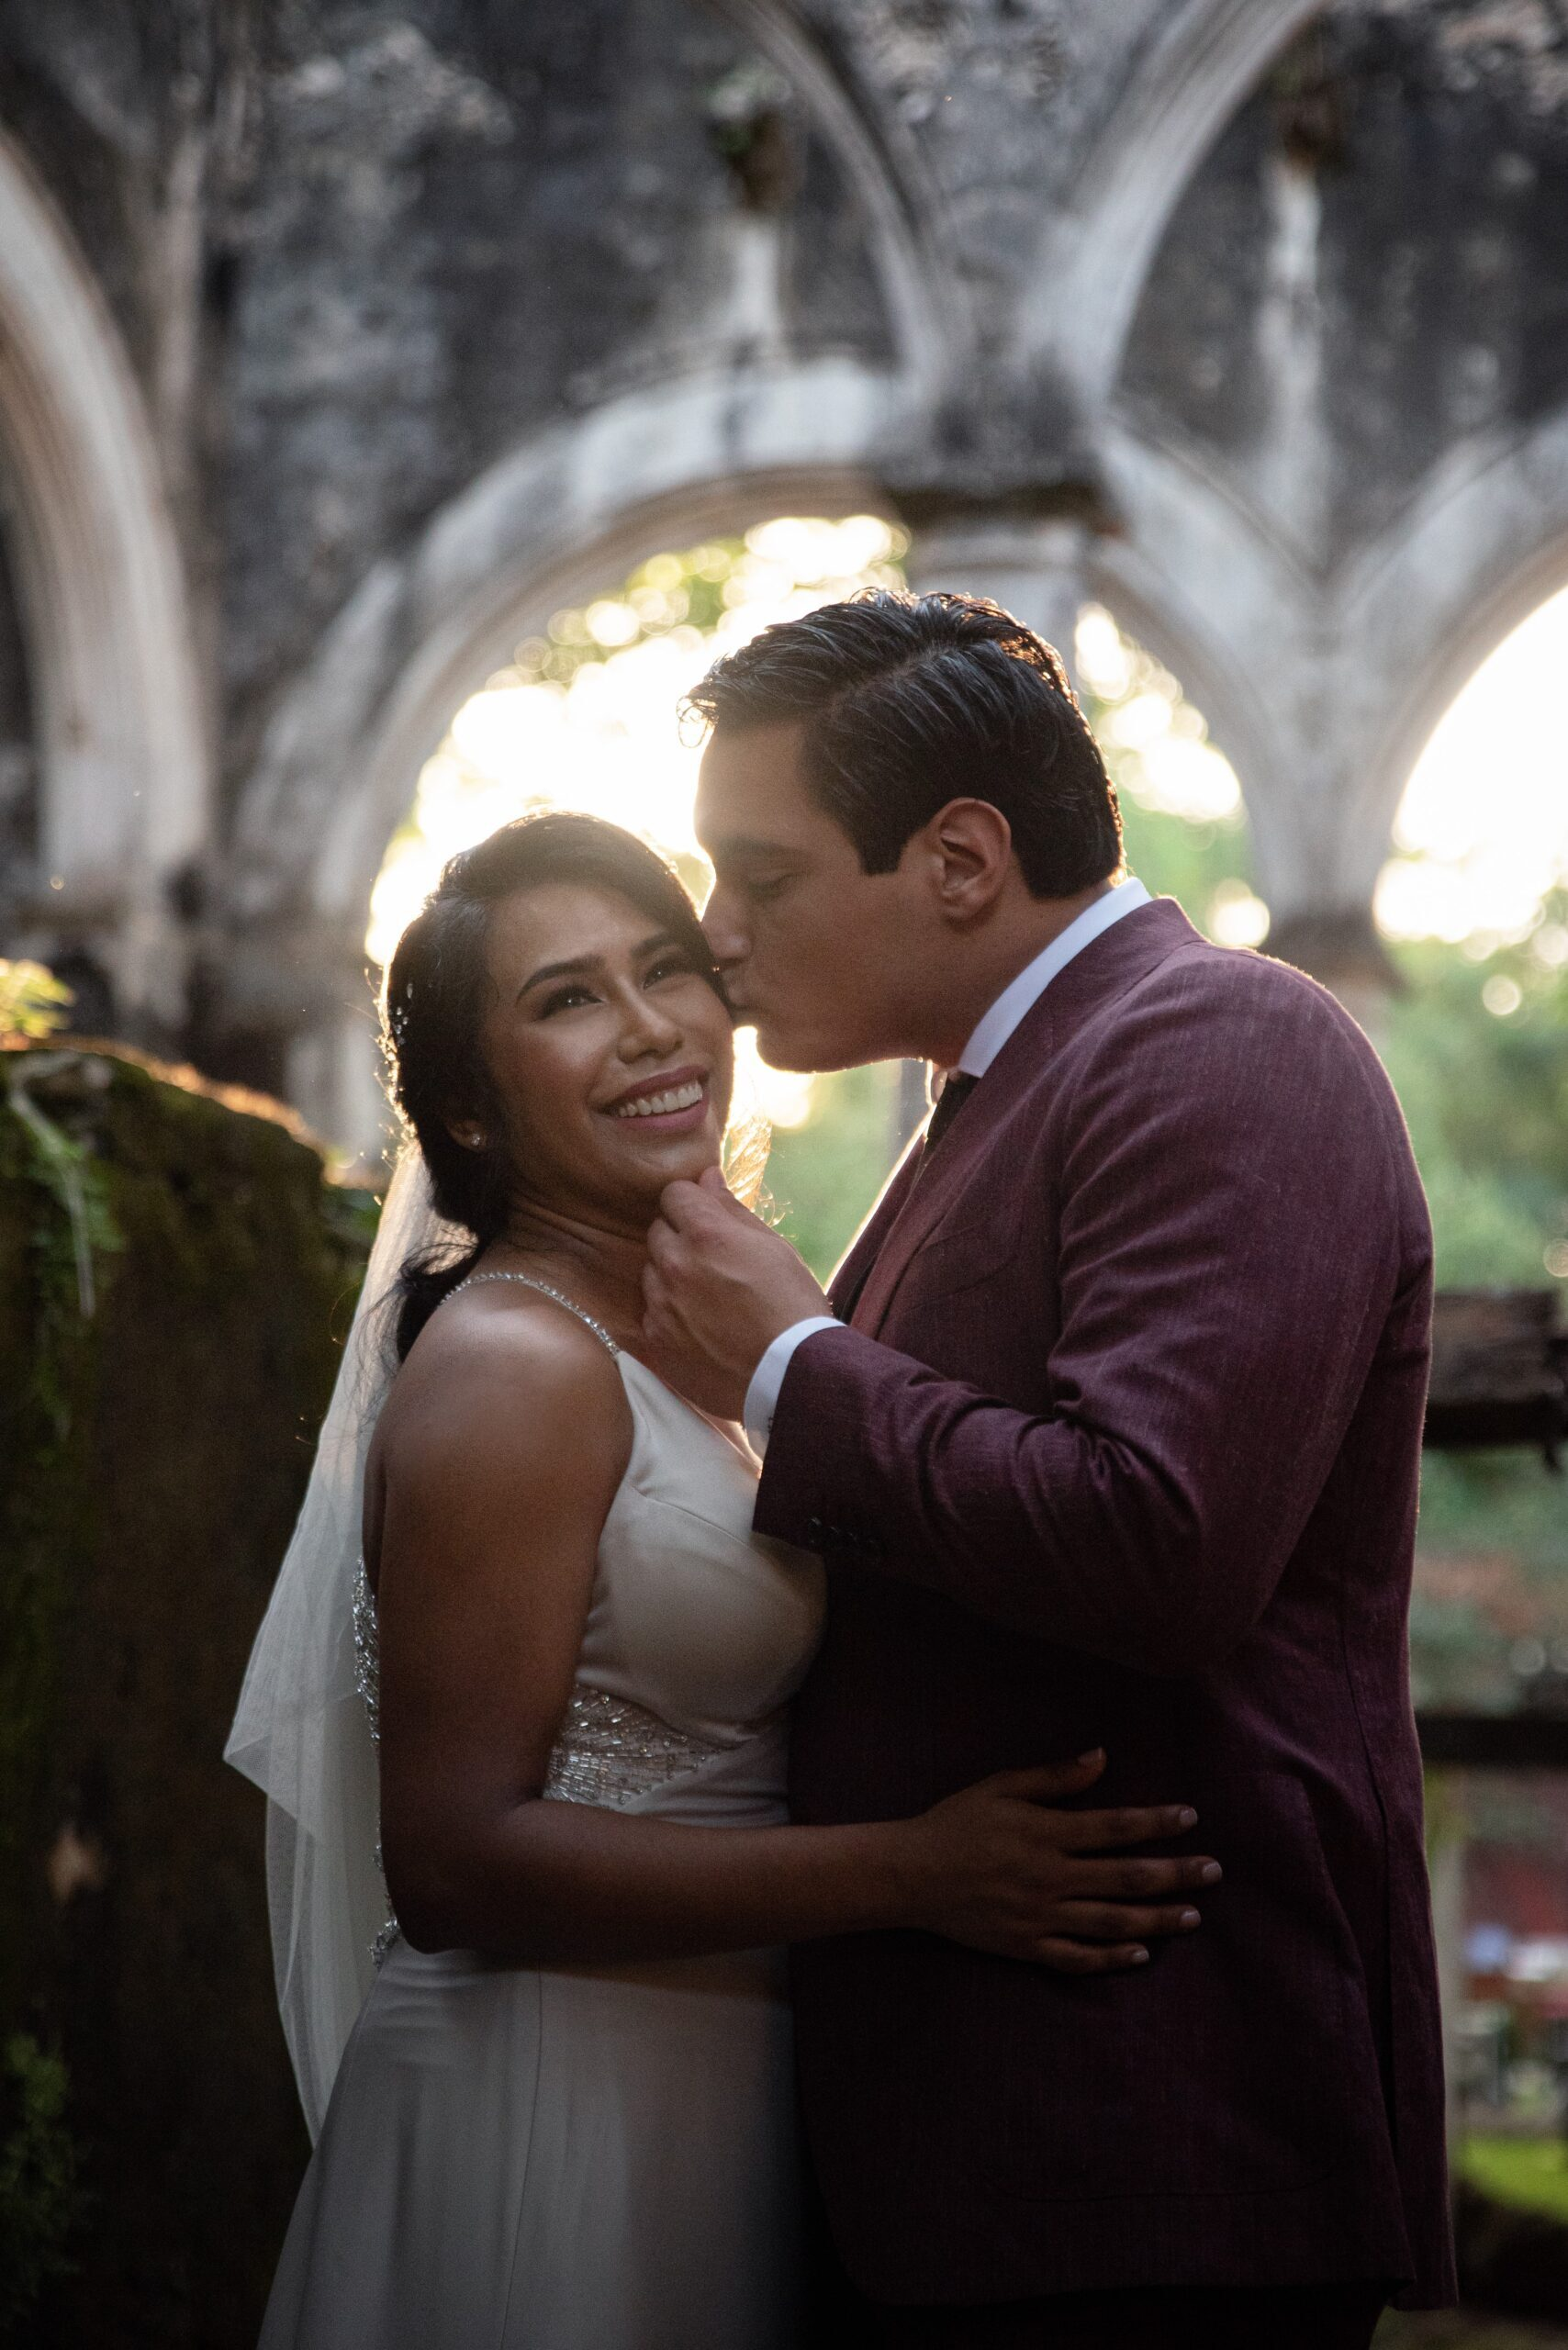 San Antonio Weddings couple, Raquel and Christian, destination wedding in the Mexican Jungle